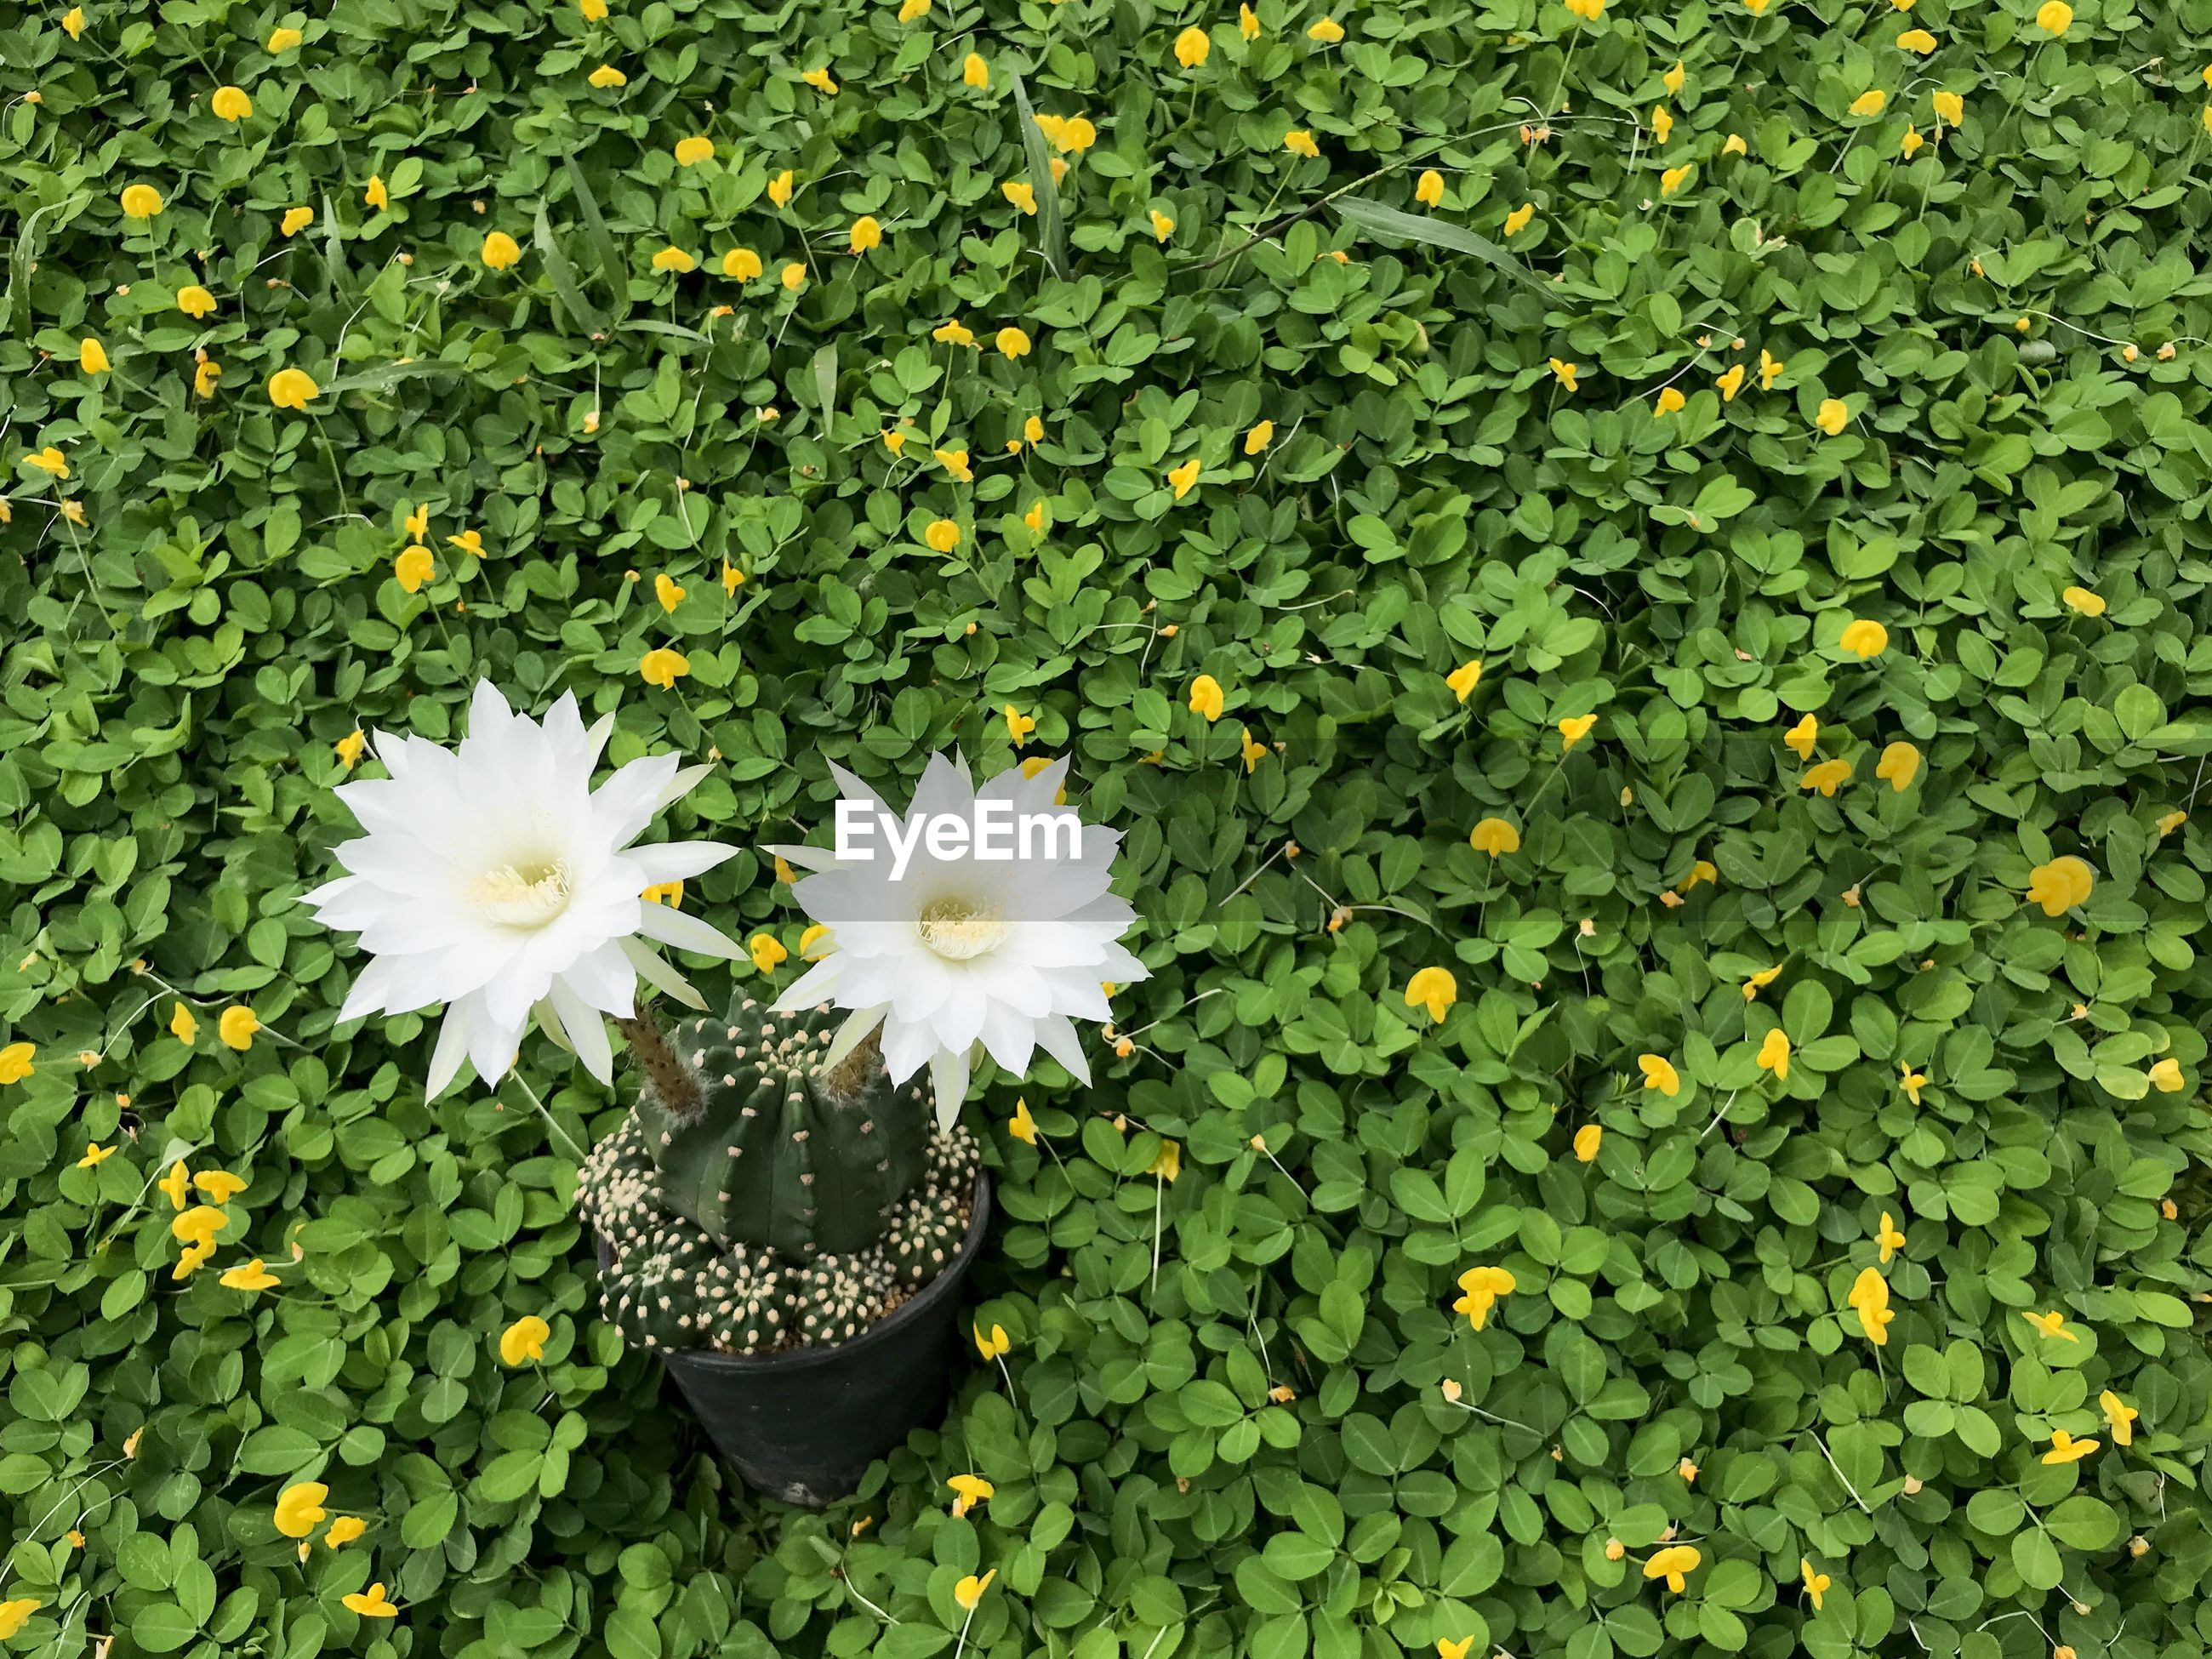 HIGH ANGLE VIEW OF WHITE FLOWERING PLANTS IN BLOOM